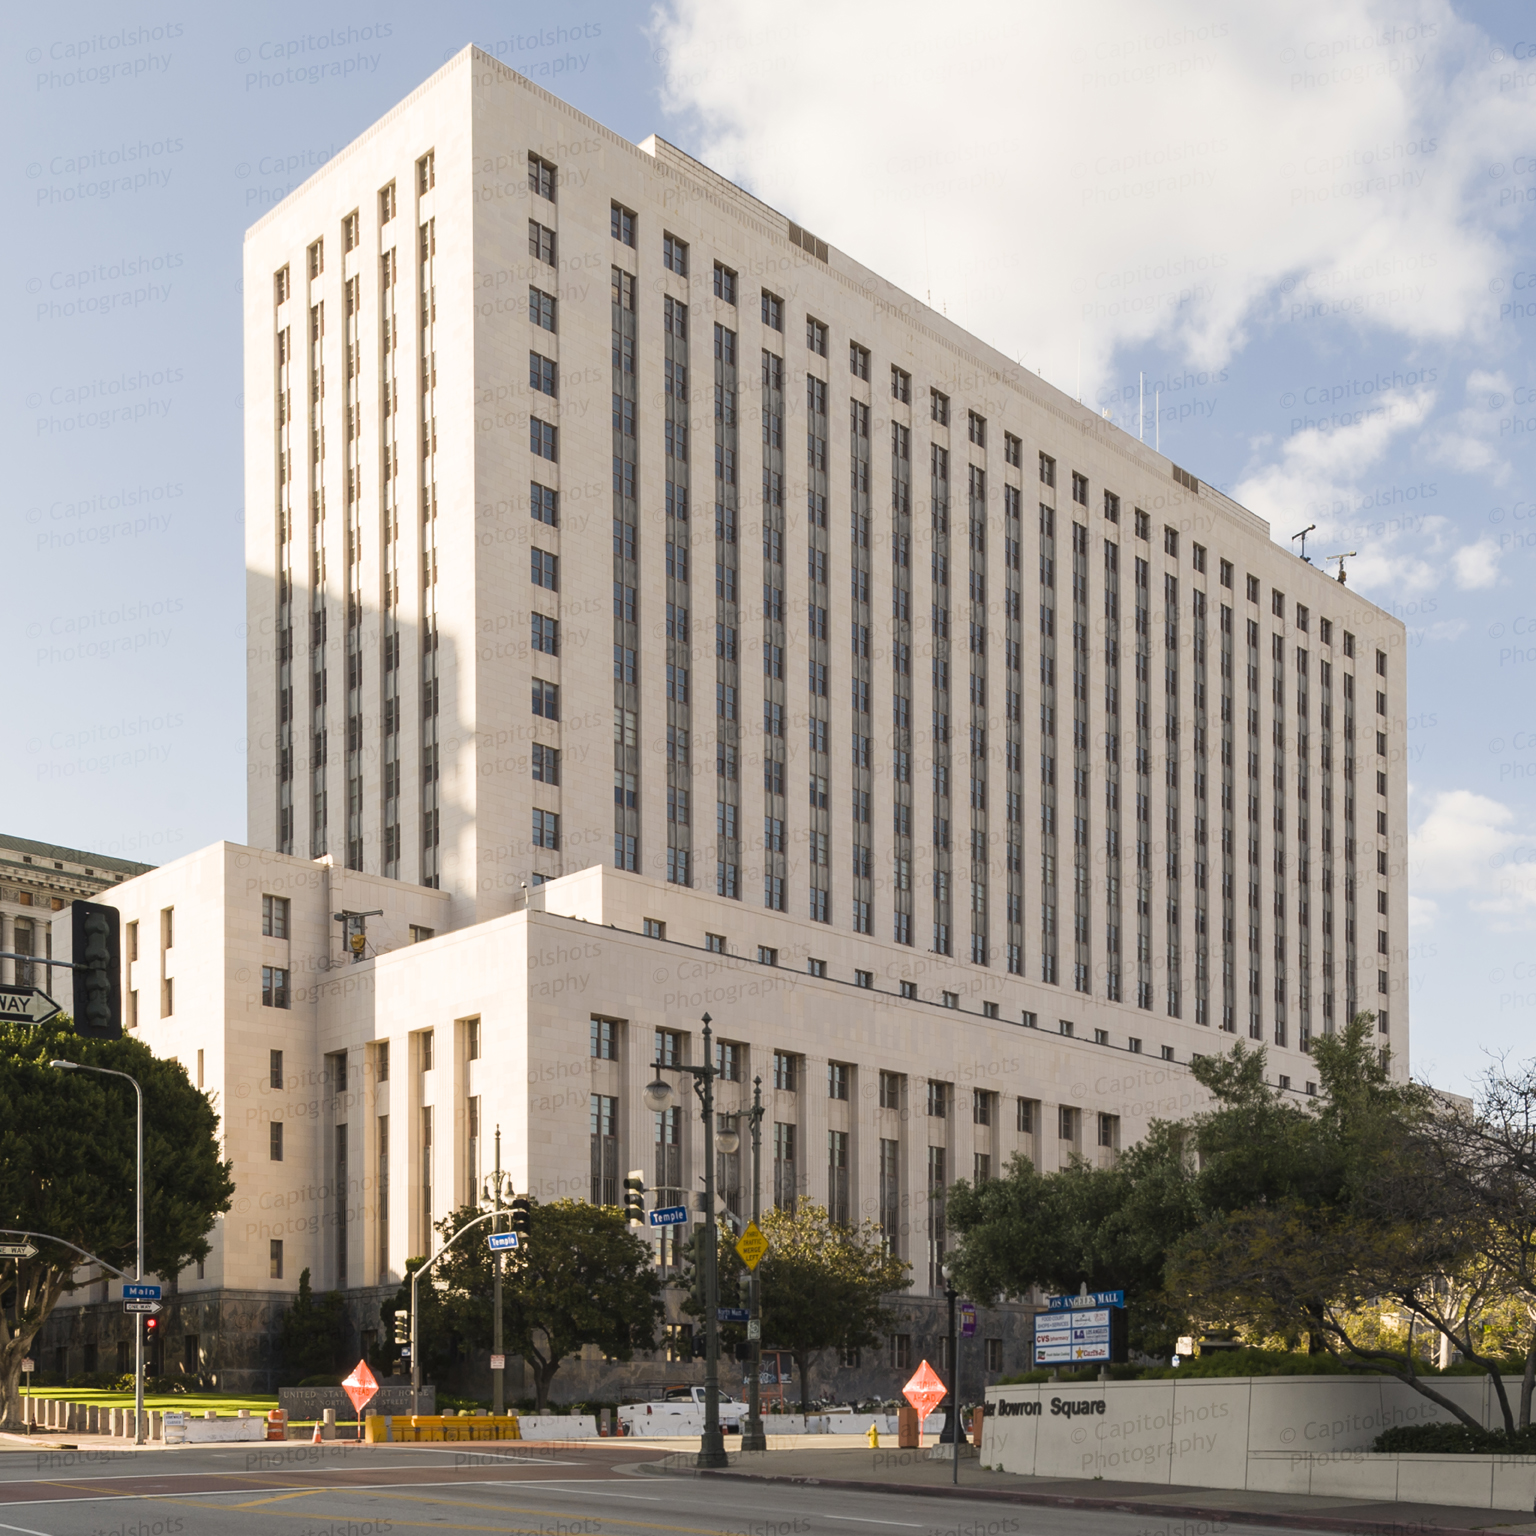 Los Angeles Small Houses: United States Courthouse (Los Angeles